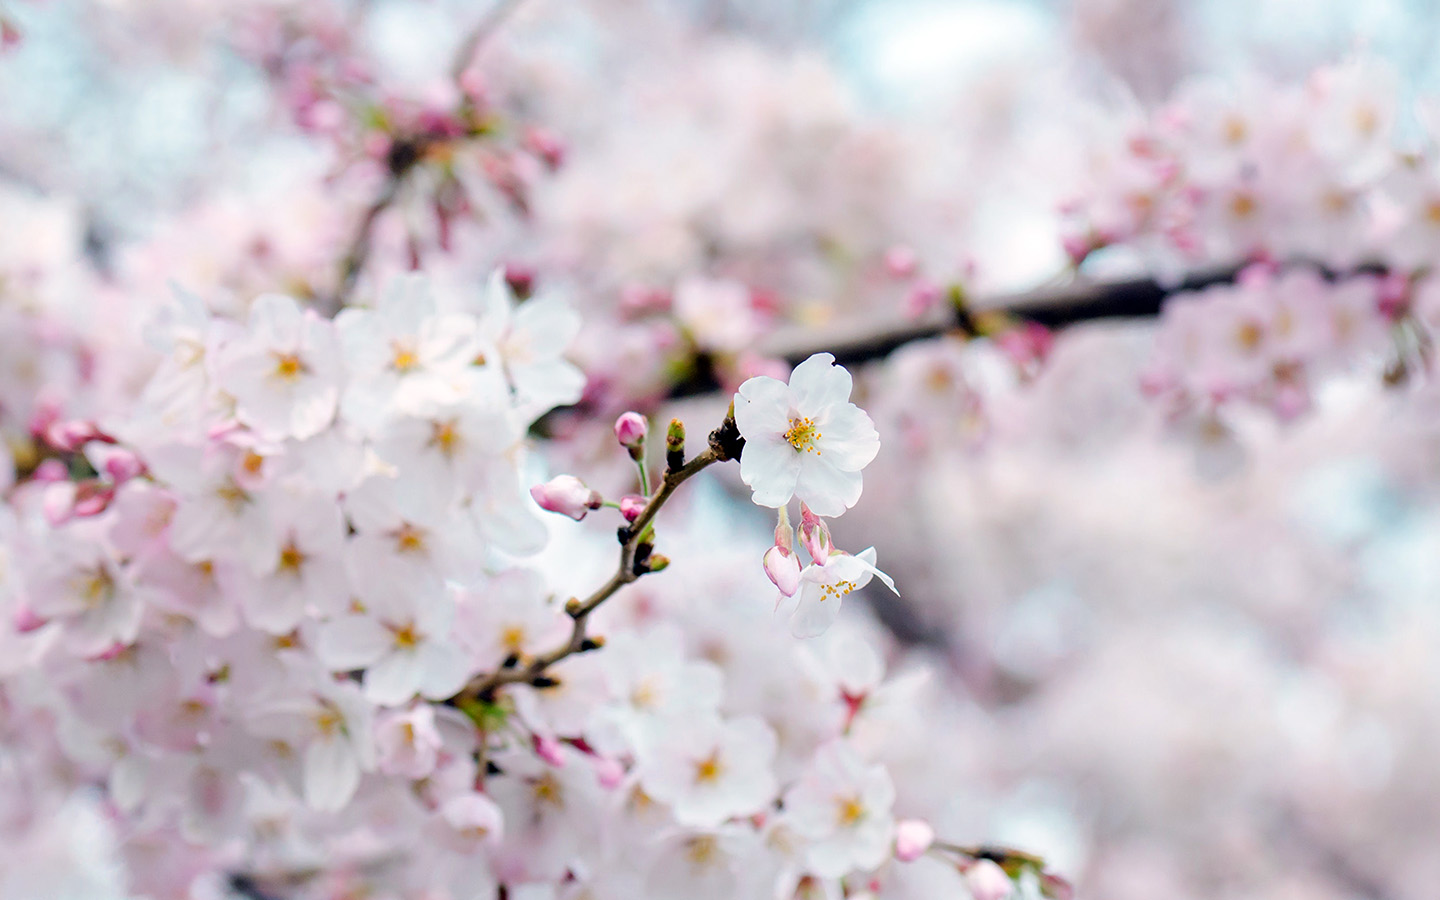 Air Anime Wallpaper Nx70 Cherry Blossom Flower Spring Tree Bokeh Nature Wallpaper